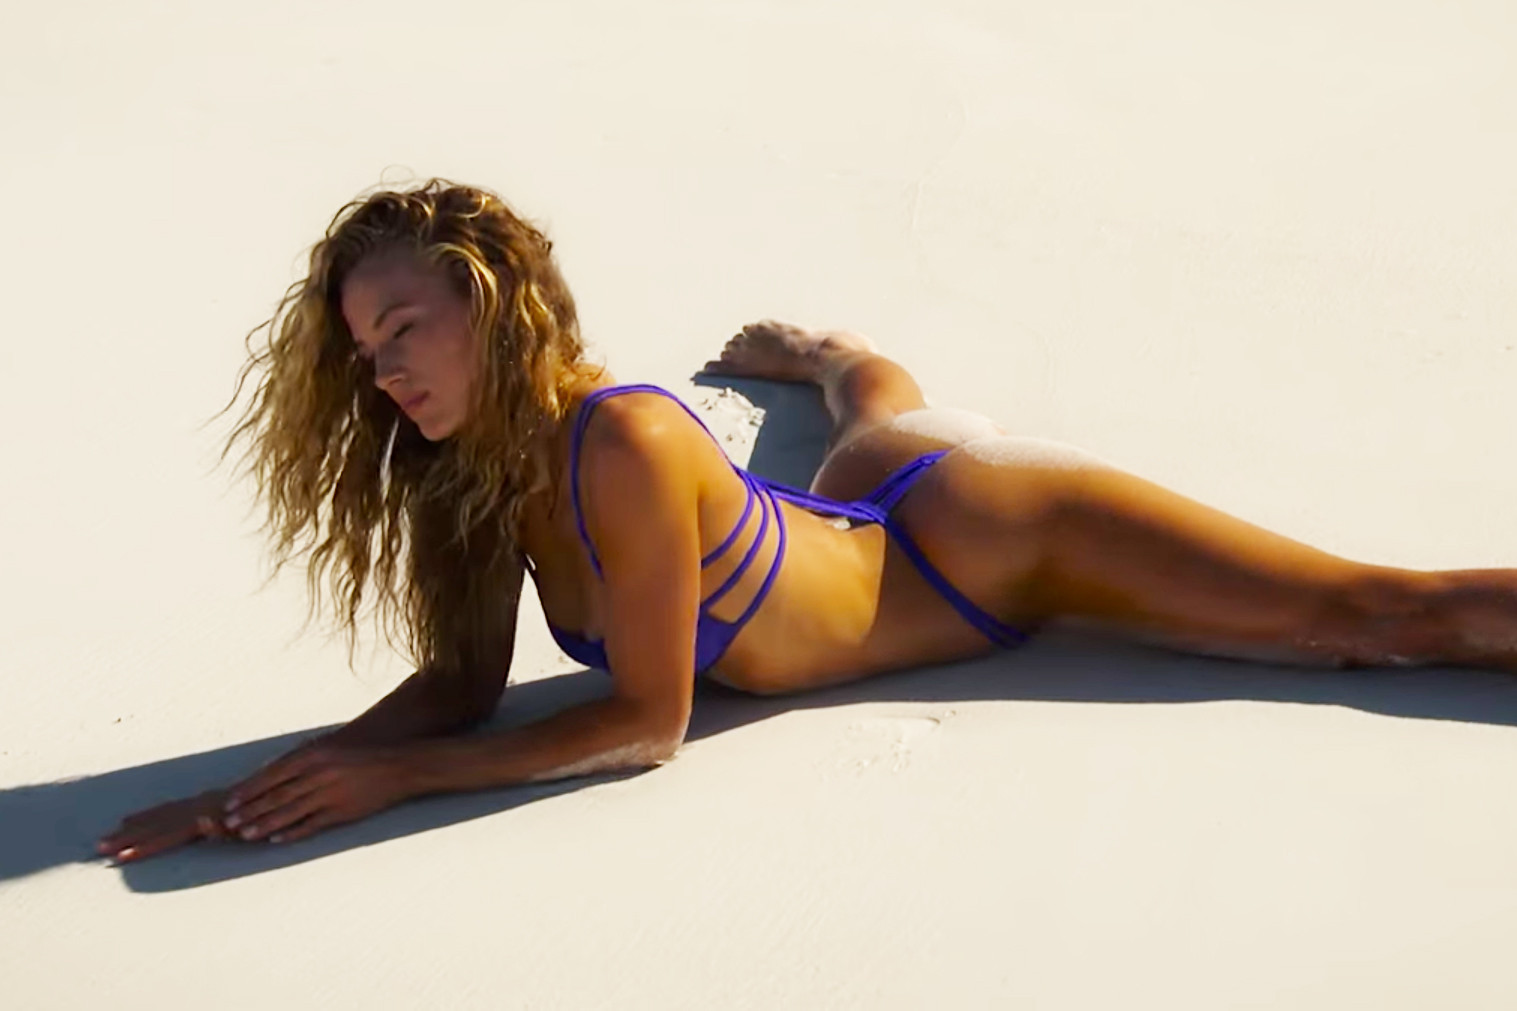 hannah-ferguson-2016-sports-illustrated-swimsuit-outtakes-0